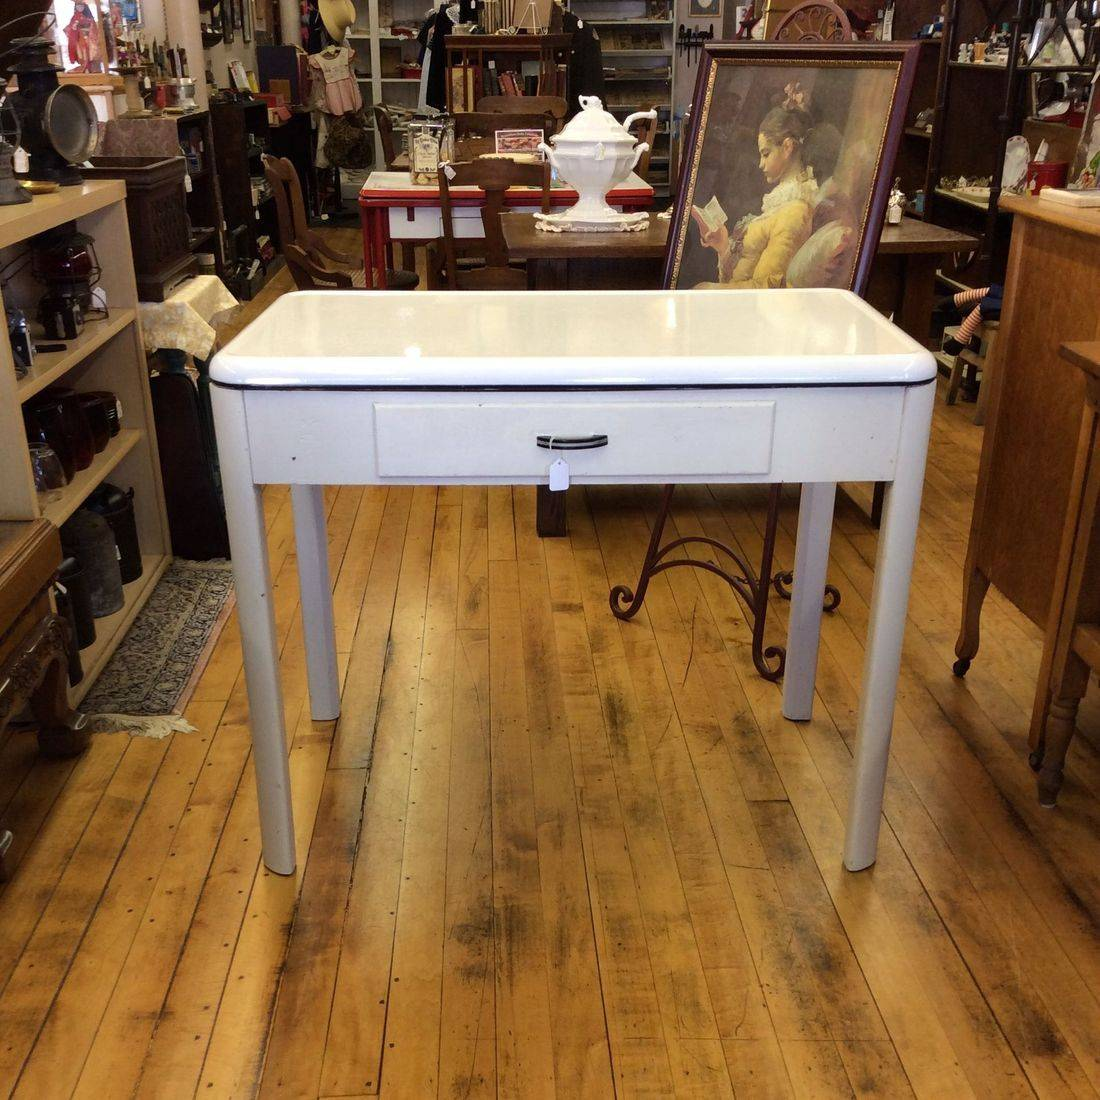 "1937 Crysteel Enamel Top Kitchen/Work Table w/Drawer  39-1/2"" W x 26-1/2"" D x 30"" H.  $75.00"